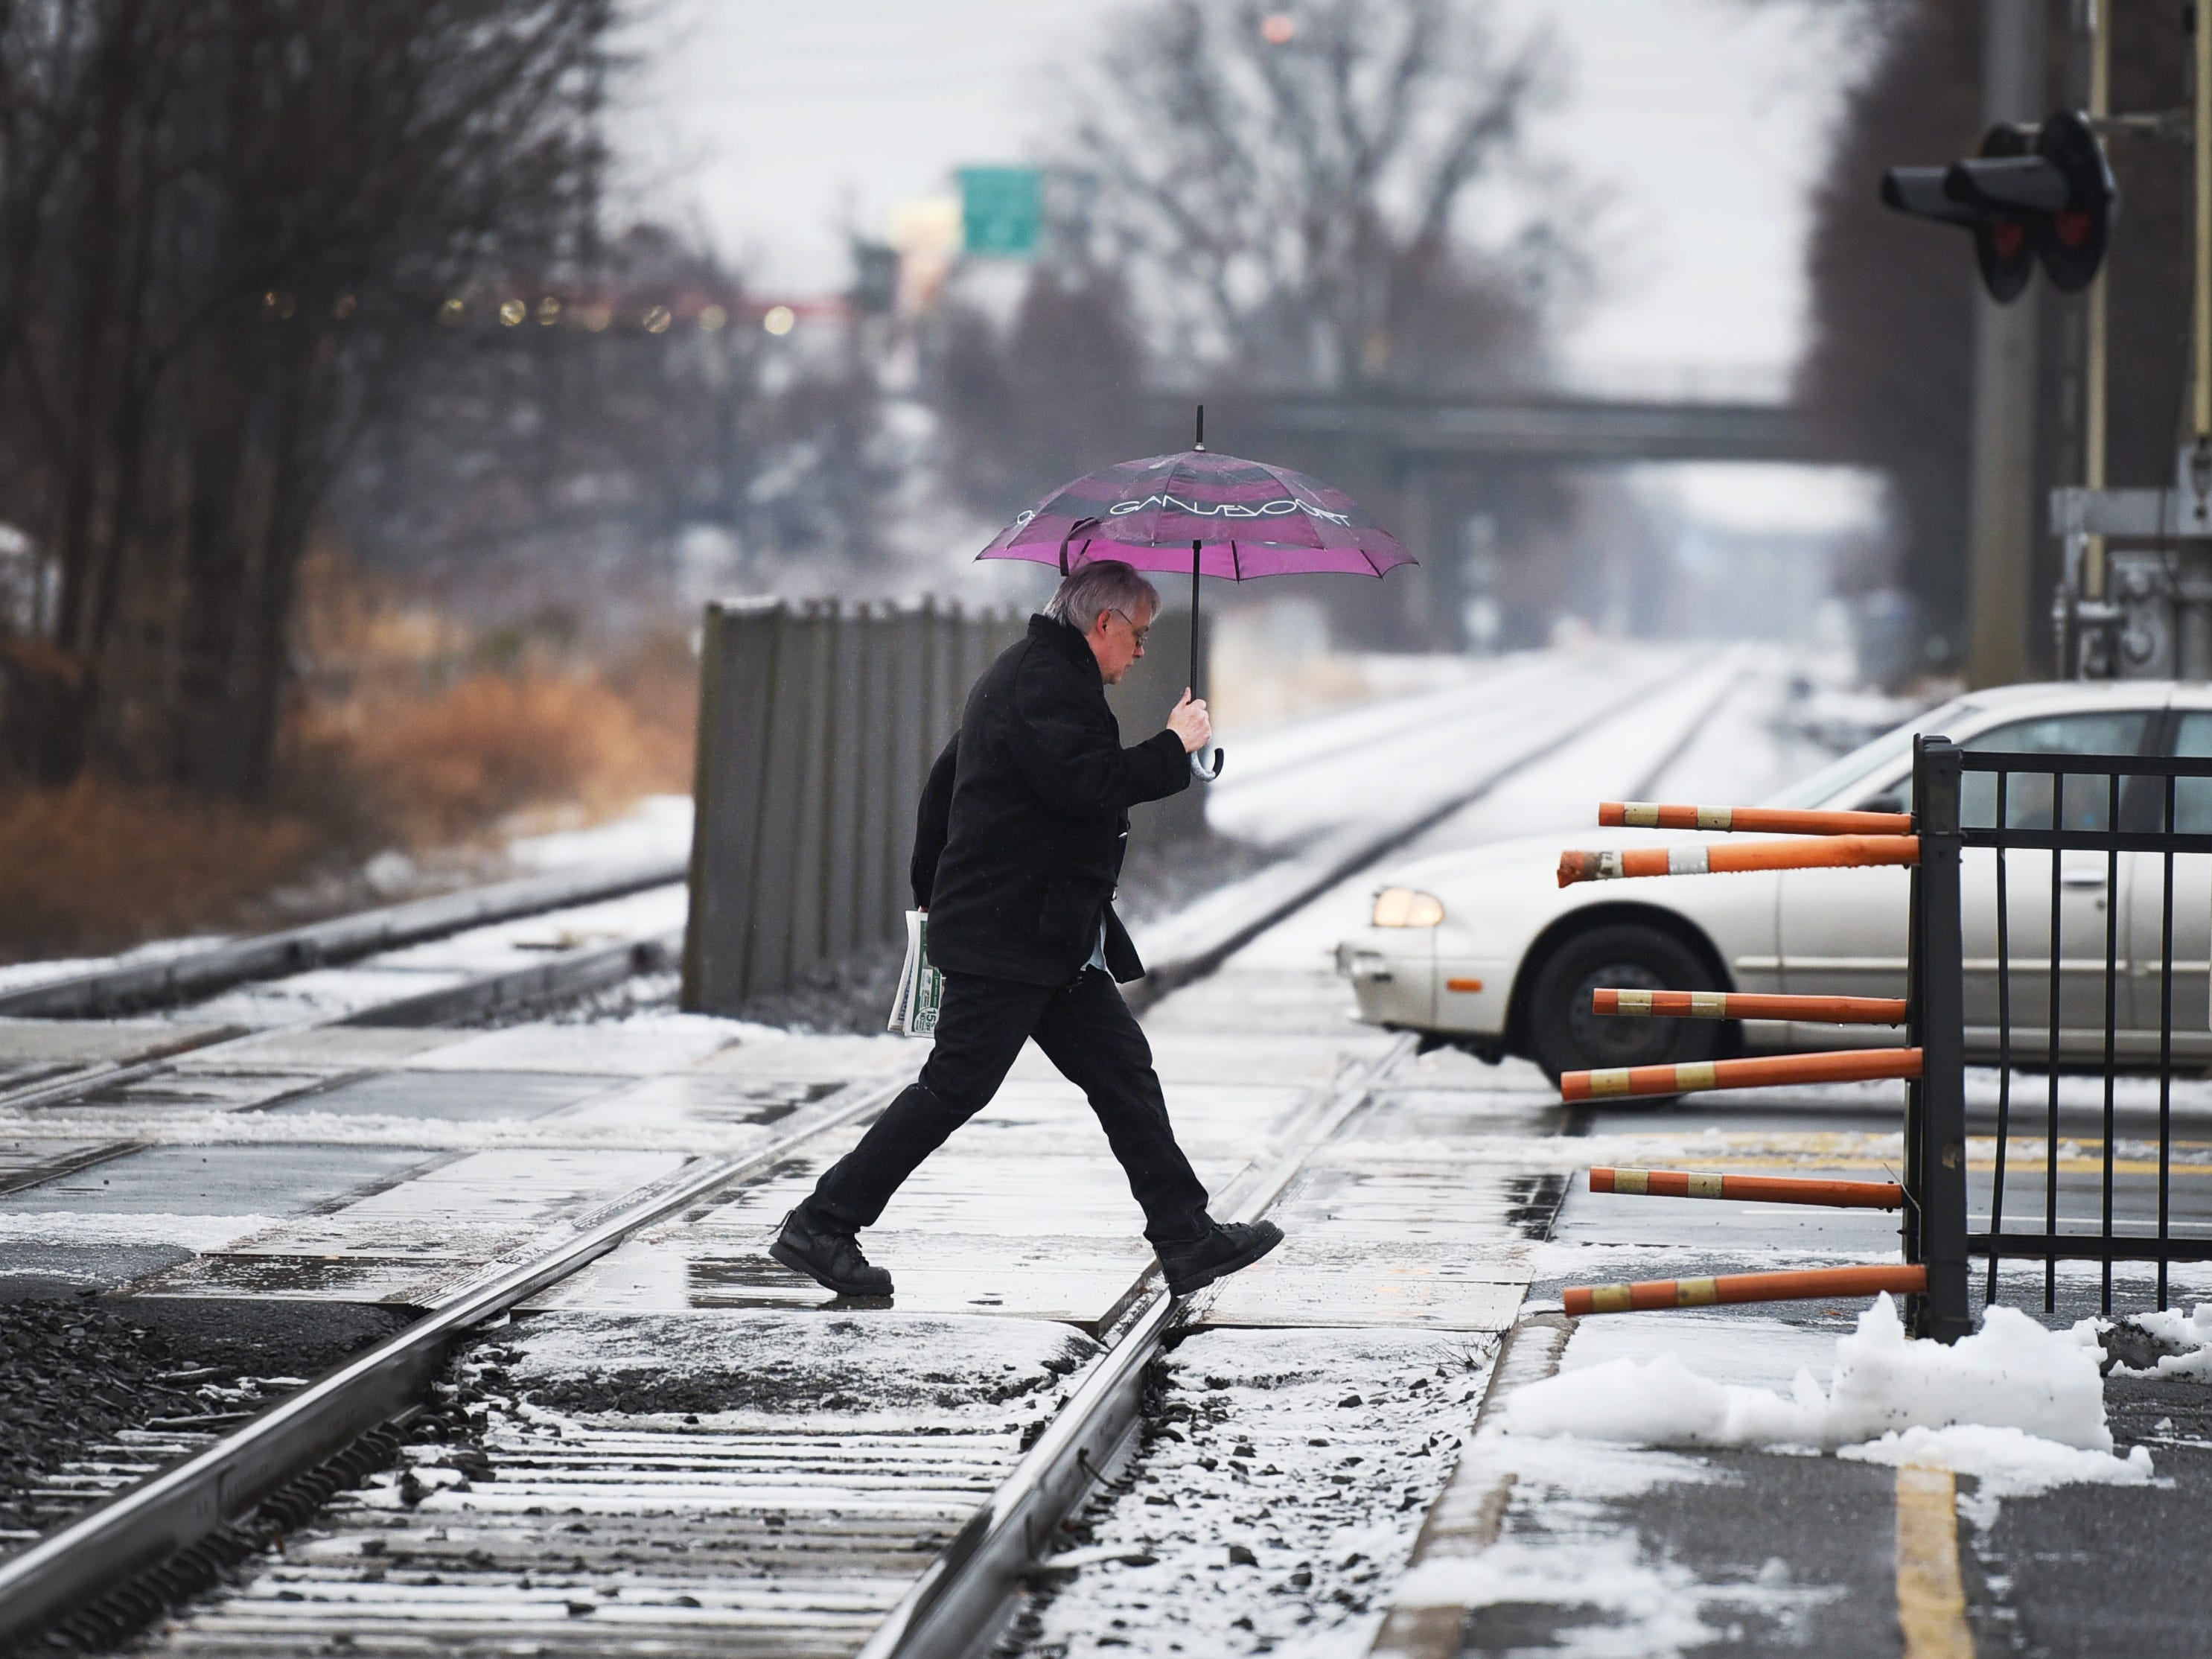 A commuter crosses over the railroad tracks at Radburn station on Sunday morning in Fair Lawn, NJ on 01/20/19.